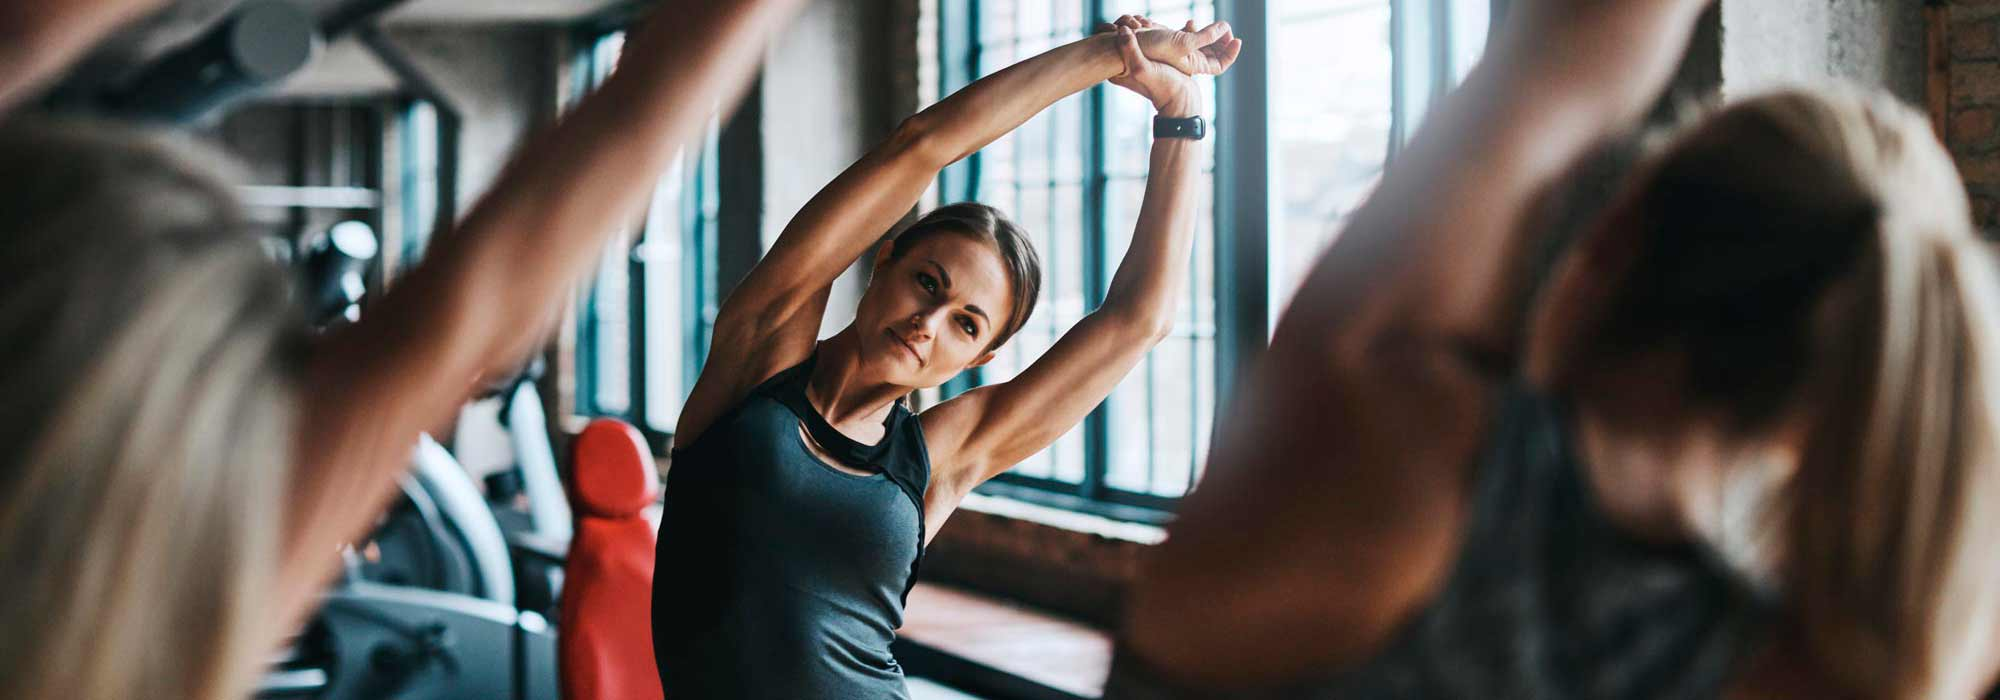 Warming up properly to get more from any exercise – Articles